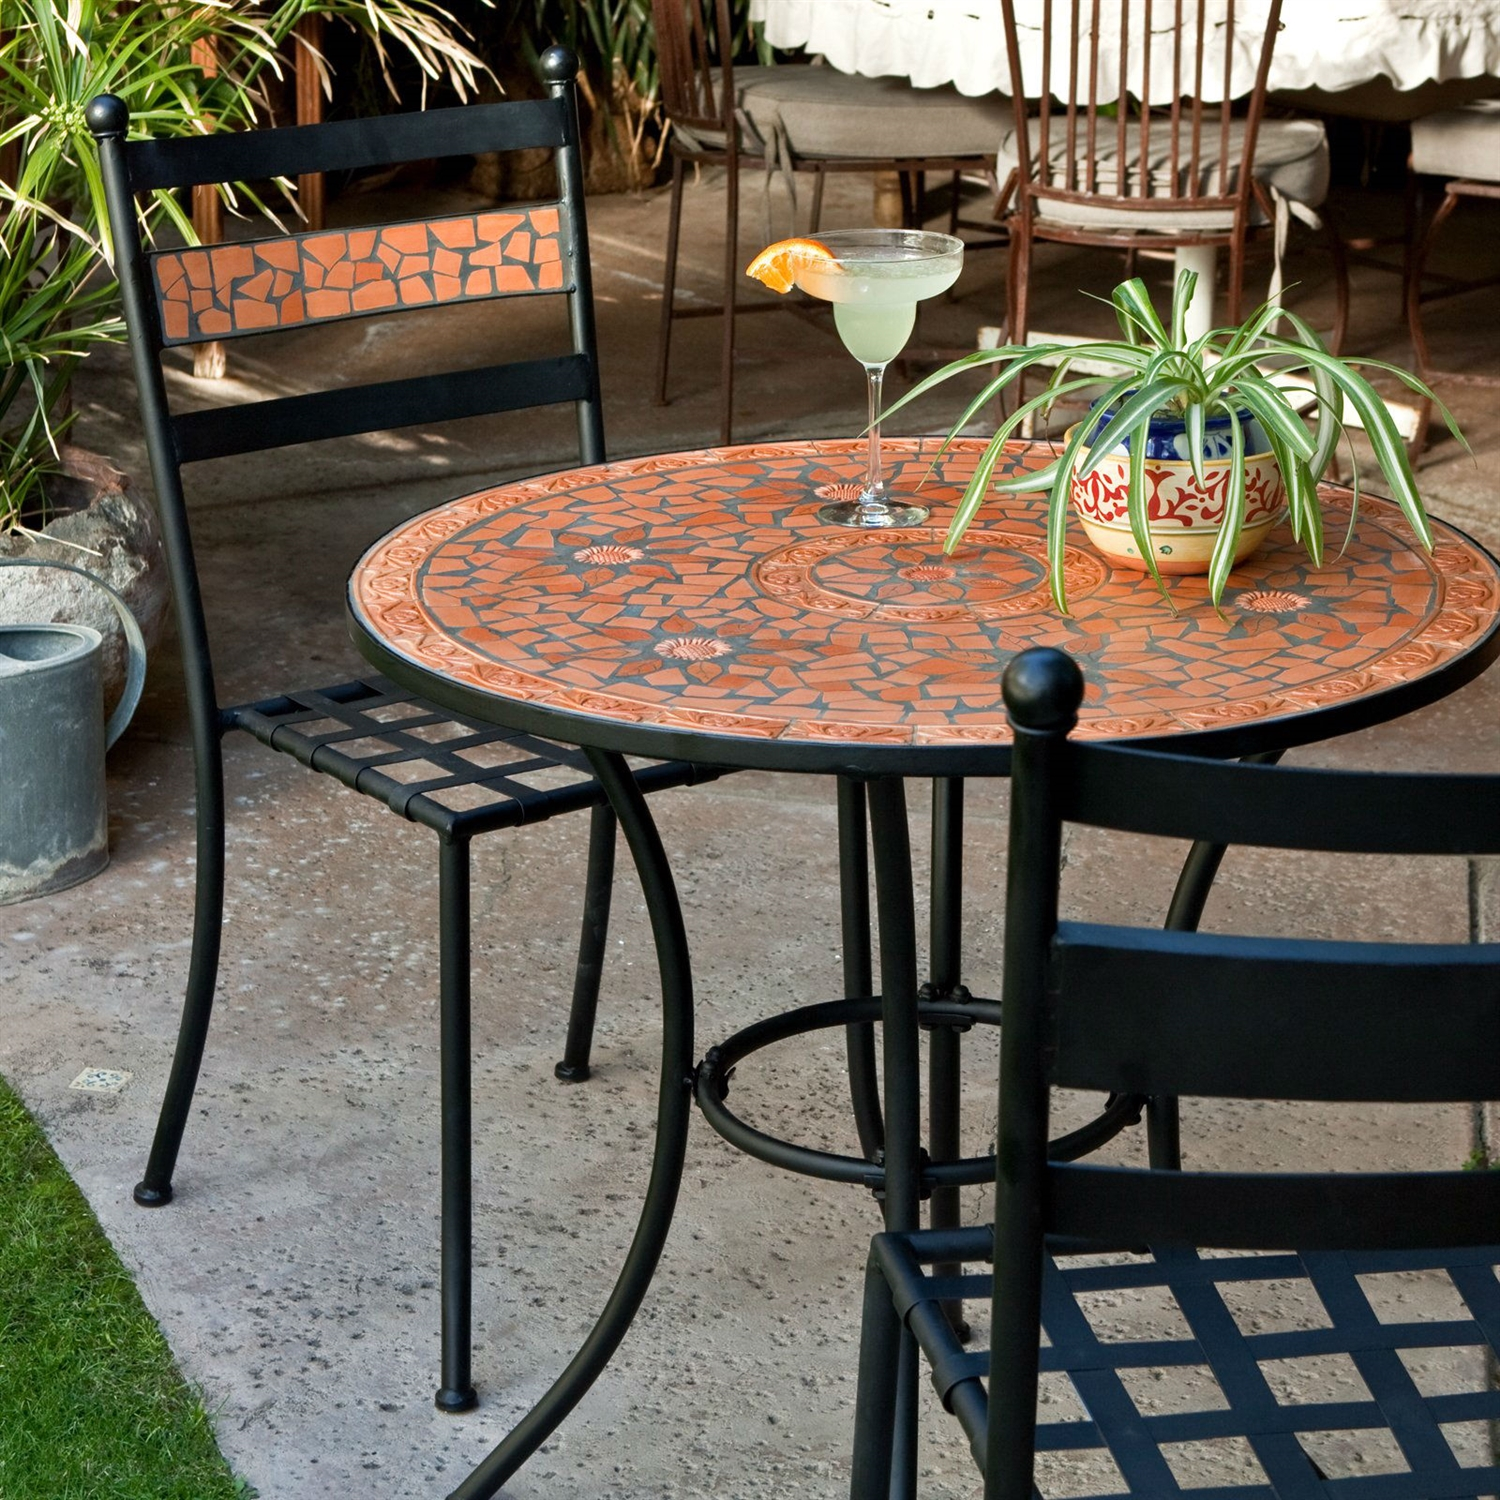 3 Piece Black Metal Patio Bistro Set With Terra Cotta Tiles Fastfurnishings